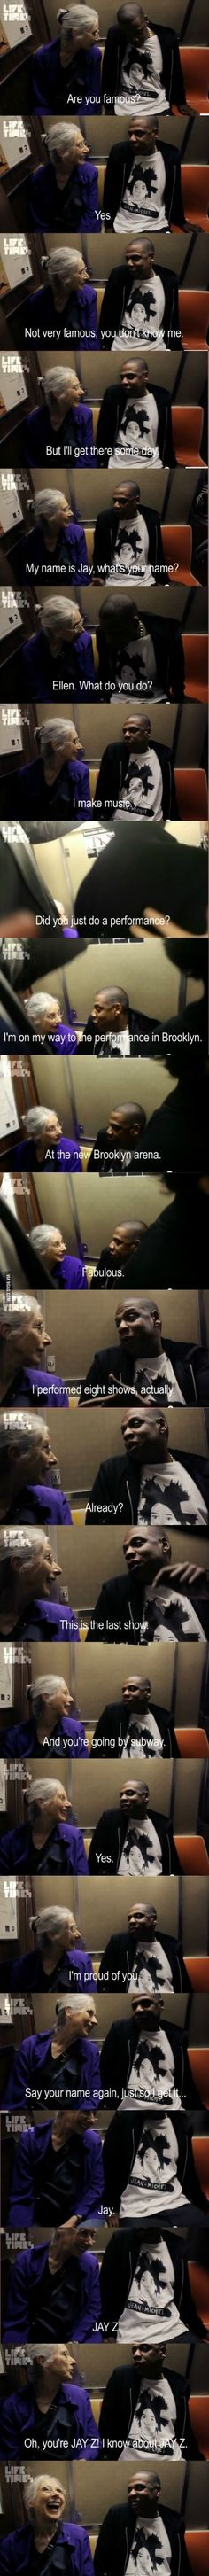 Jay Z's conversation with an old lady on the subway. Be humble